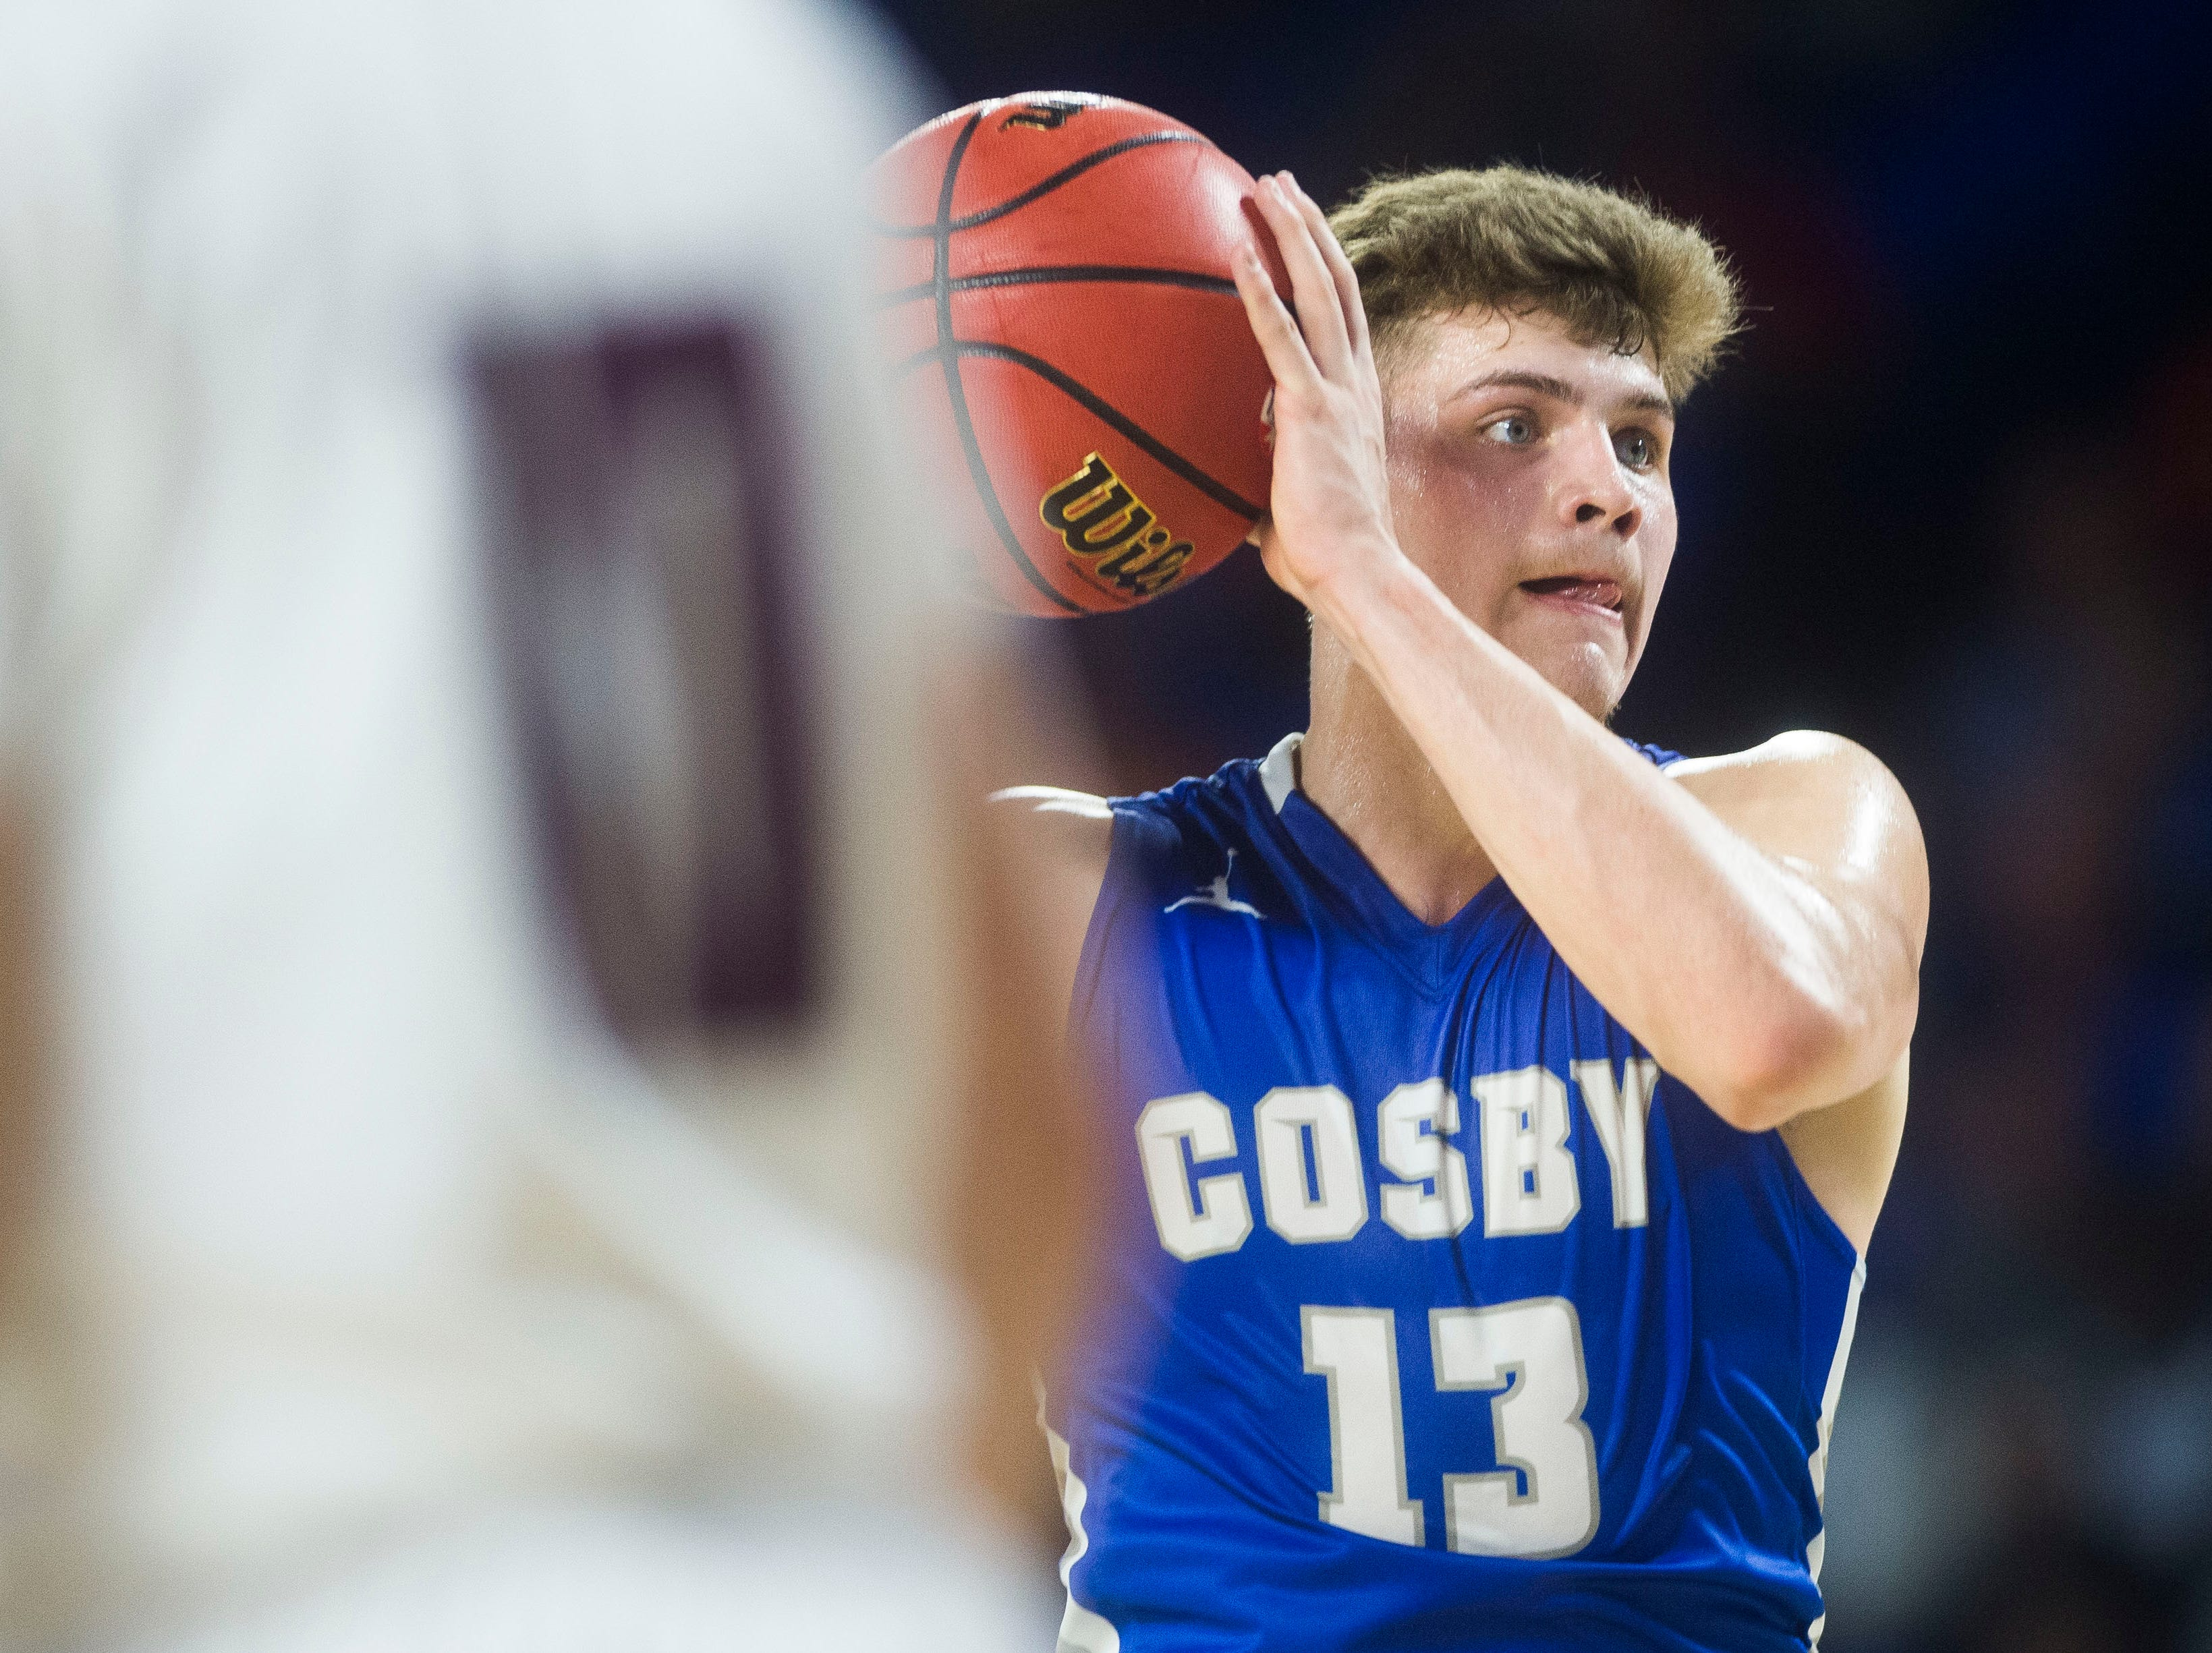 Cosby's Austin McKeehan (13) looks to pass during a TSSAA A state quarterfinal game between Eagleville and Cosby at the Murphy Center in Murfreesboro, Thursday, March 14, 2019.